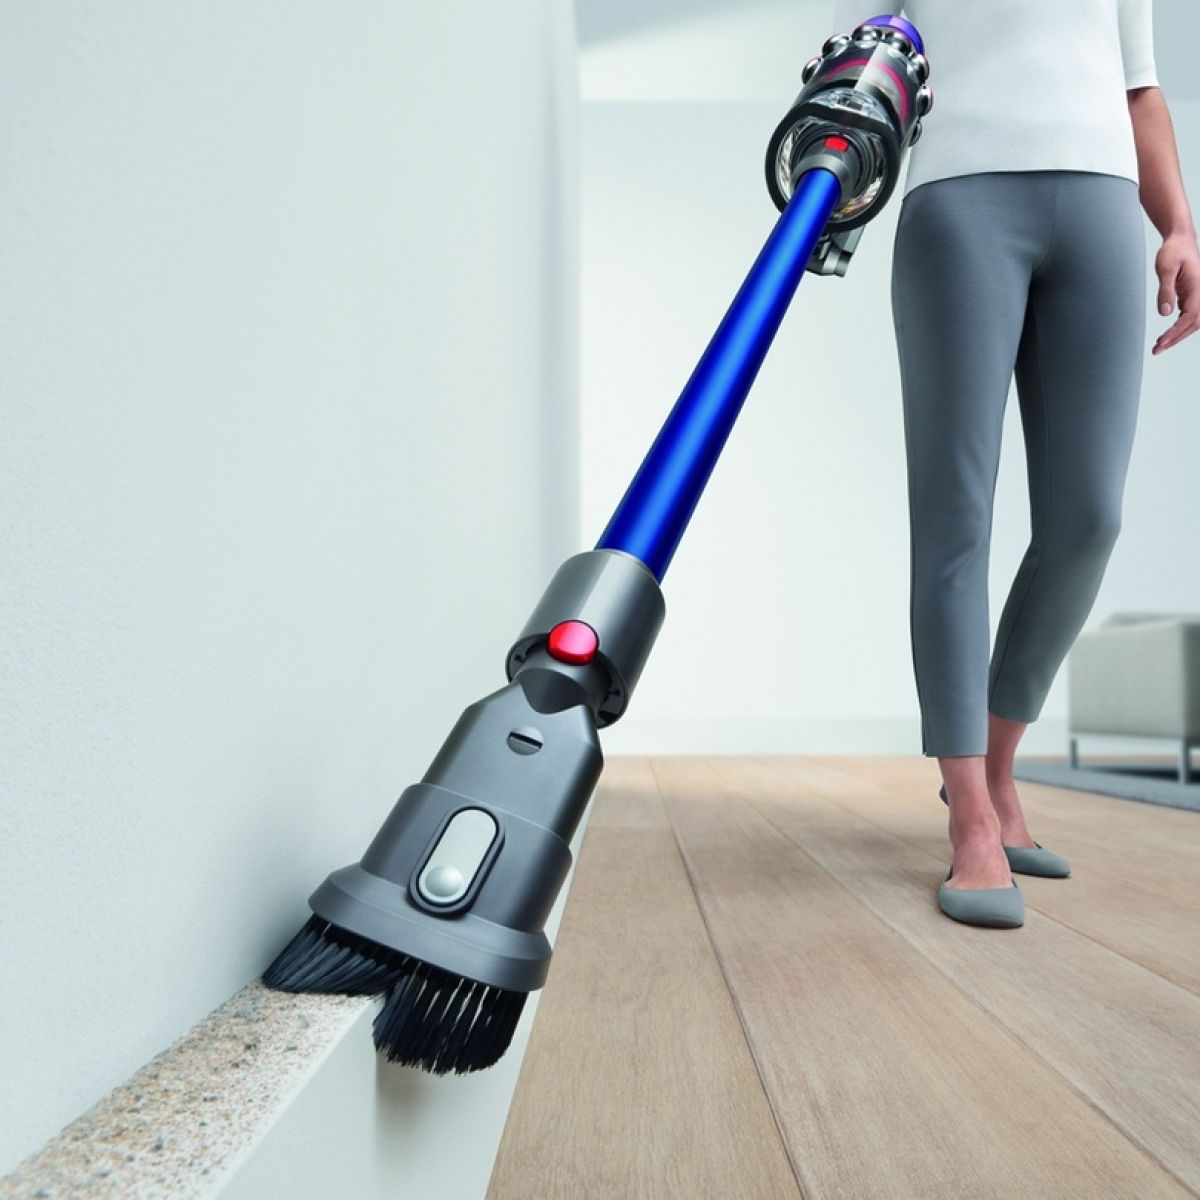 Dyson Absolute V11 Is It Worth The Price